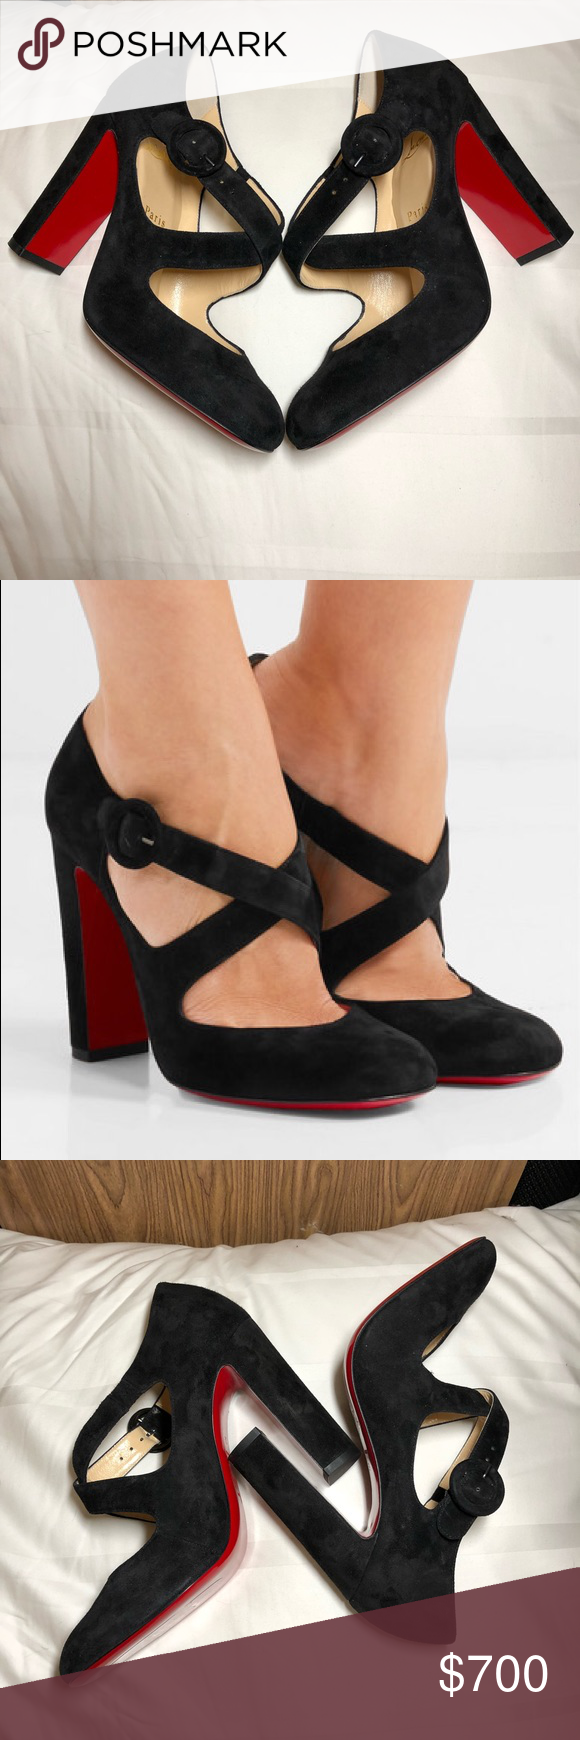 promo code 882ad 9cad0 NEW christian louboutin miss ellen pumps size 39 Brand new ...